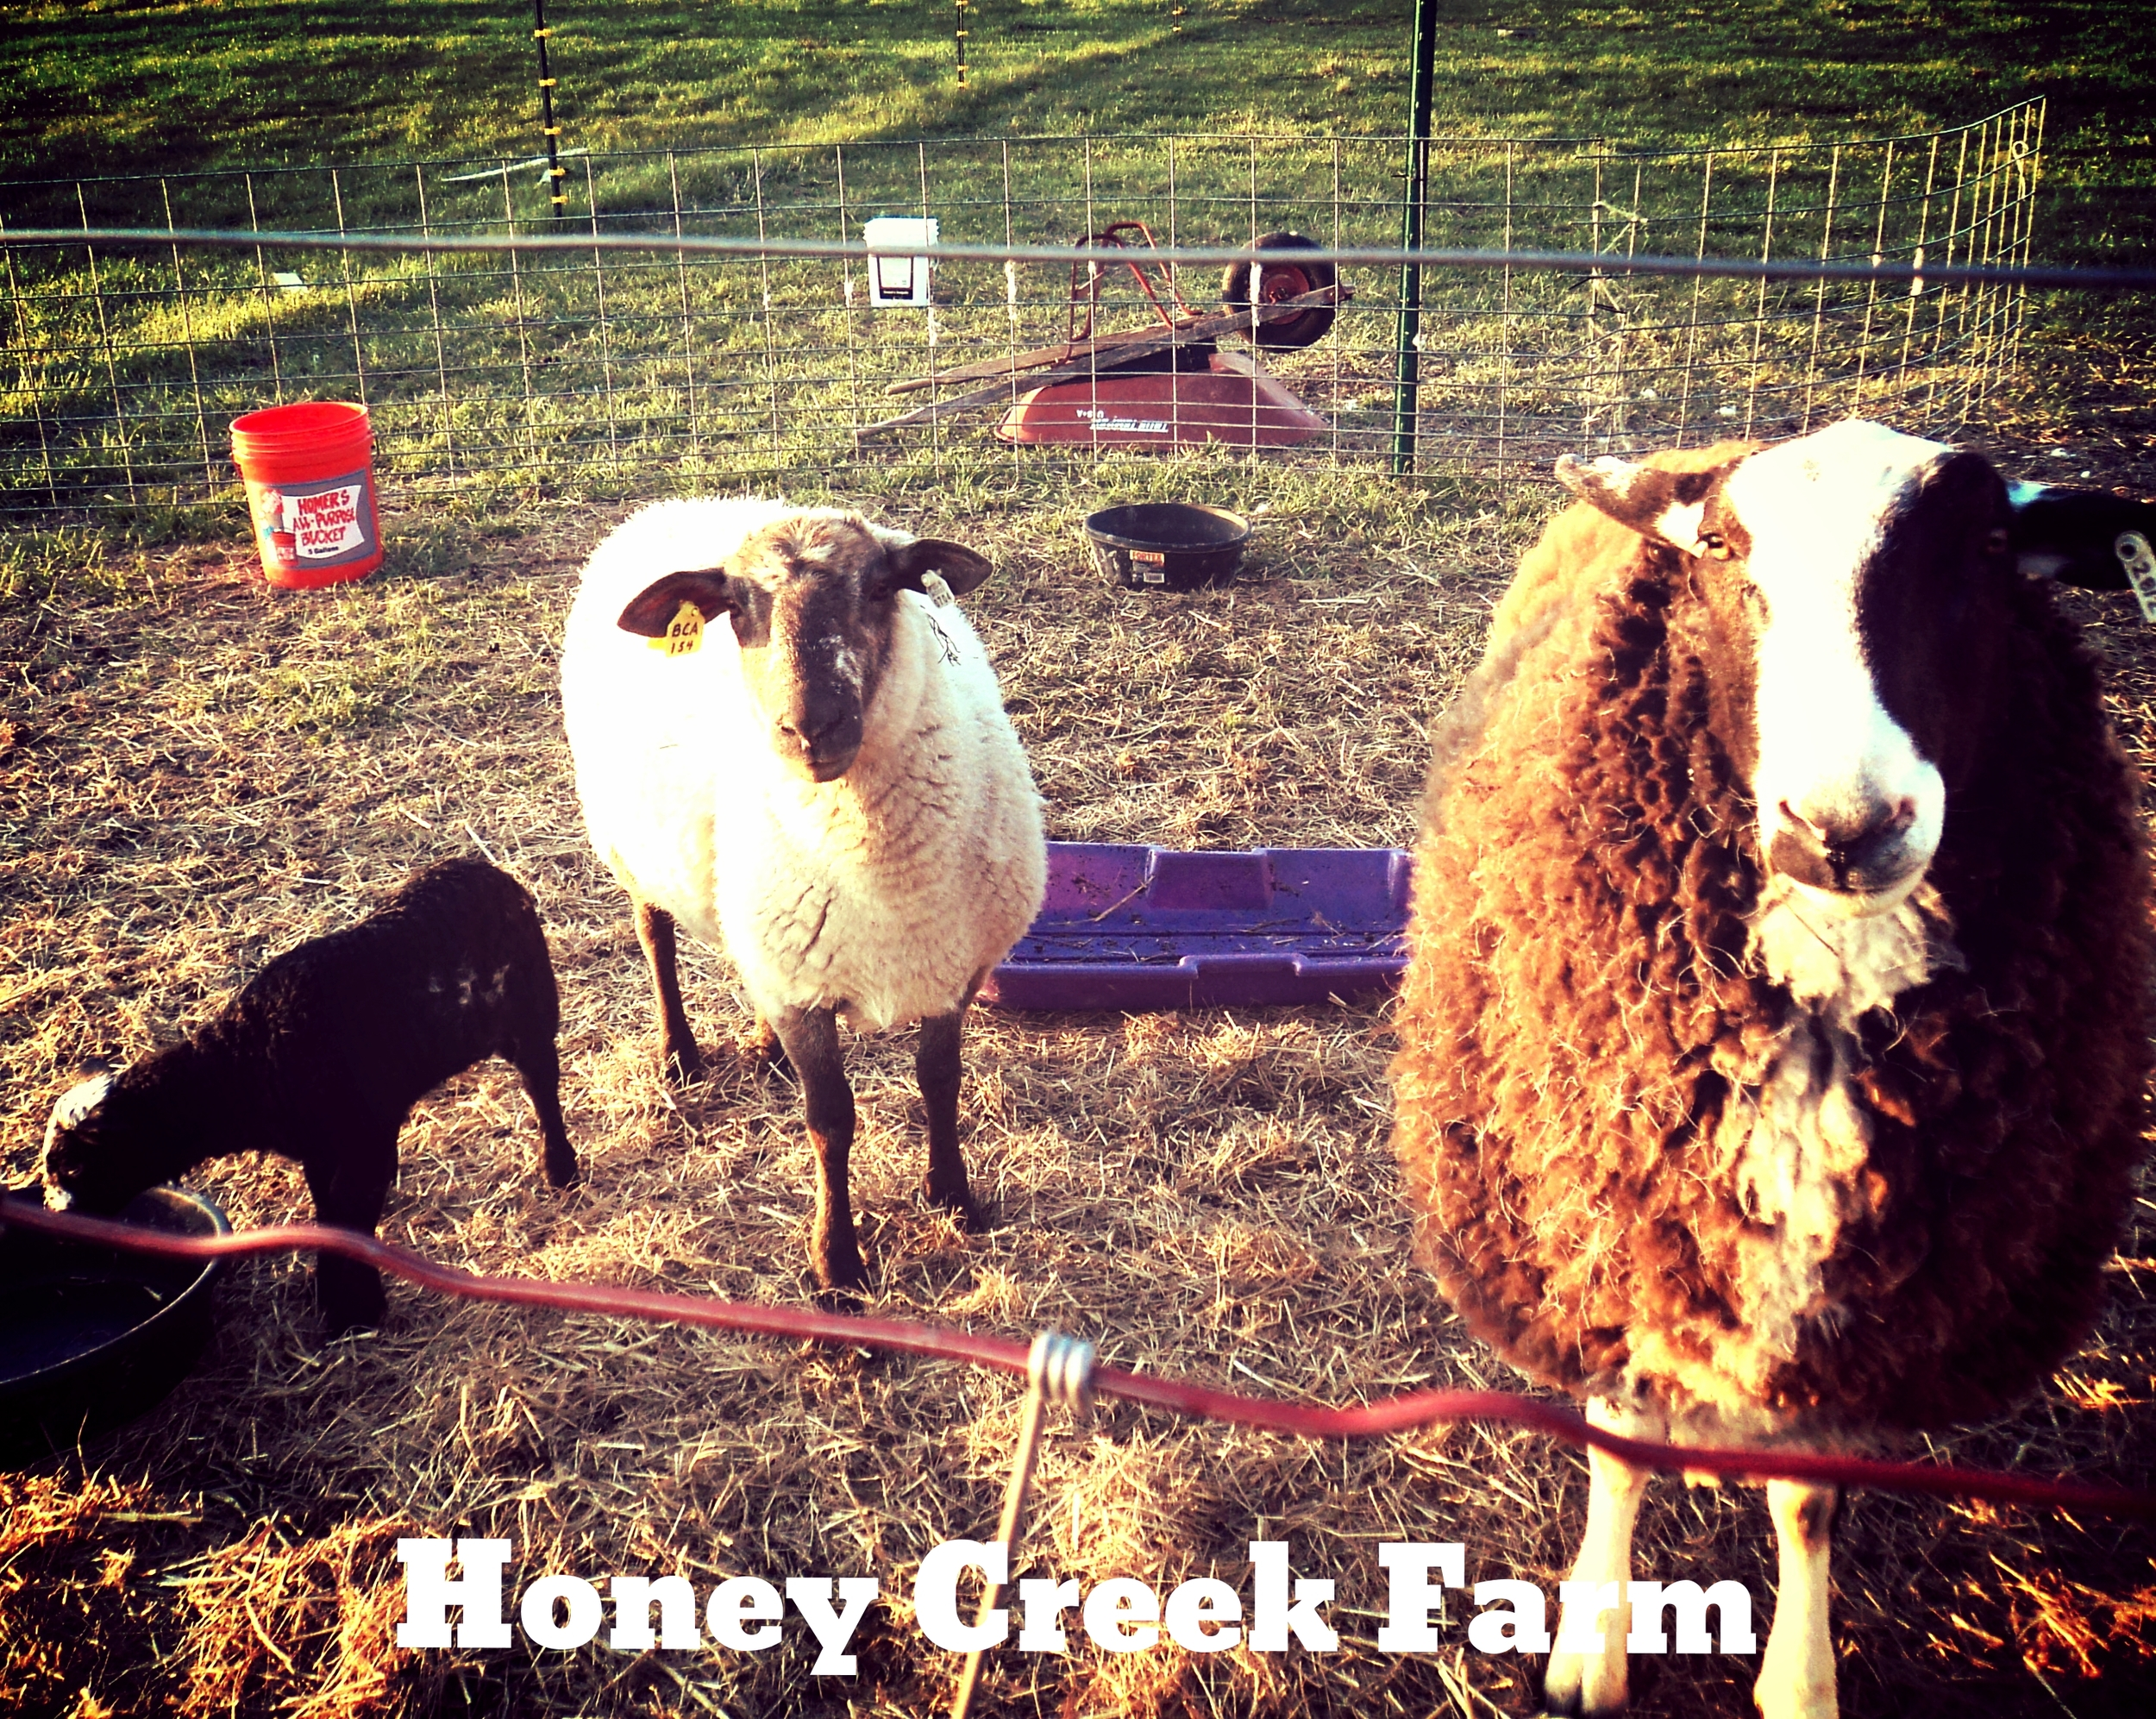 Used with permission from Honey Creek Farm